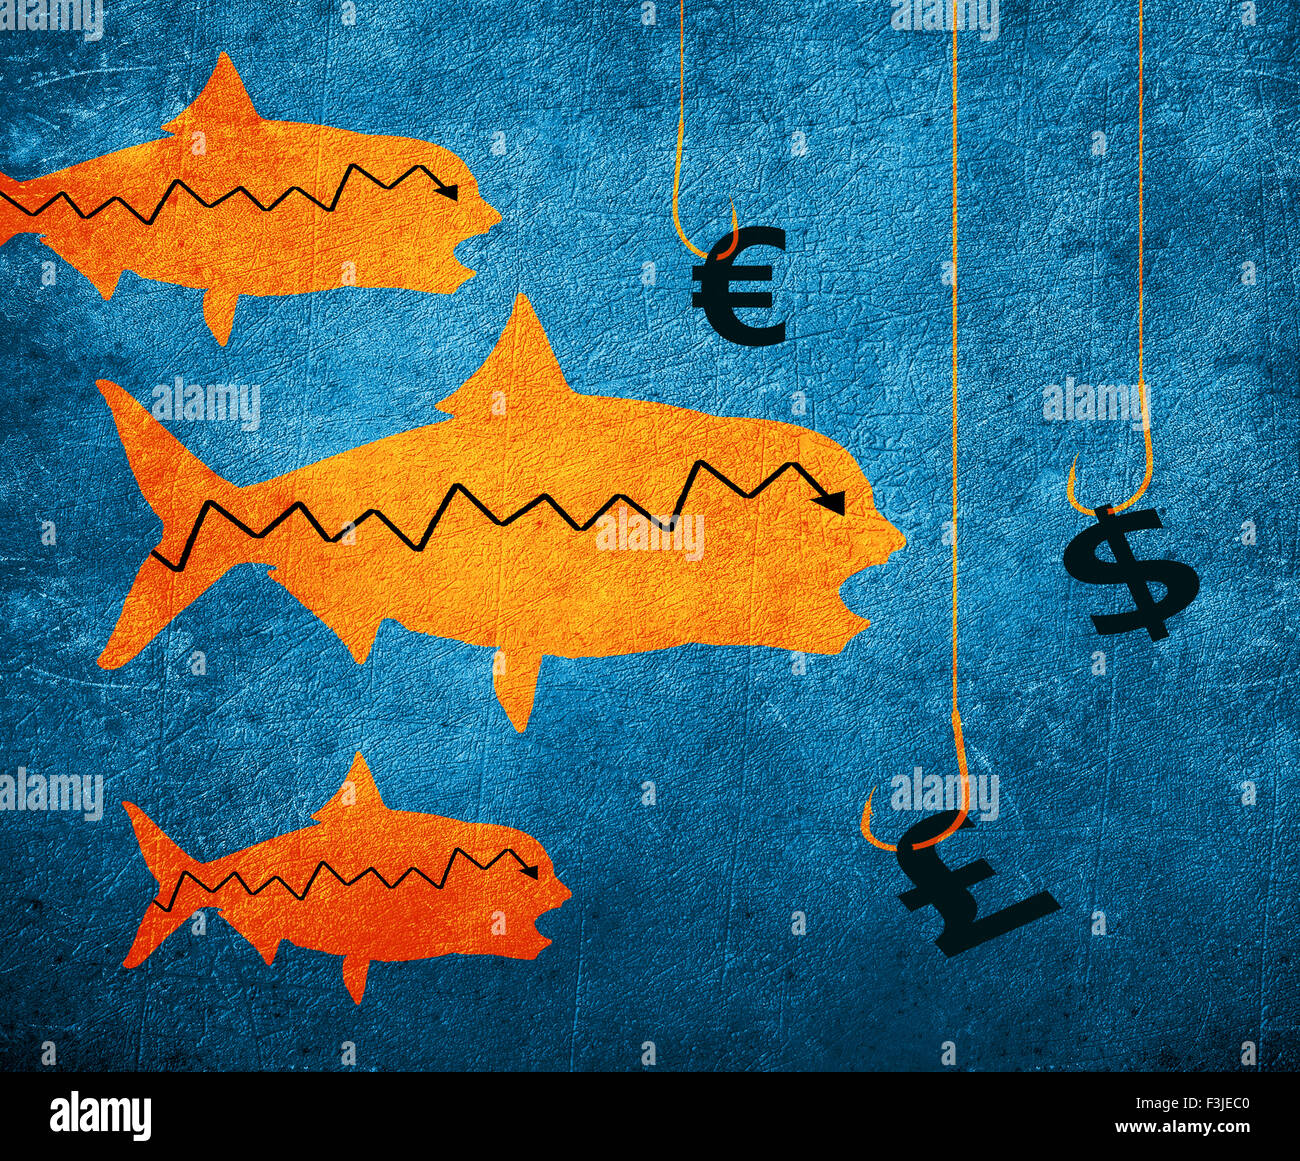 fish fishing hook and money symbol digital illustration - Stock Image